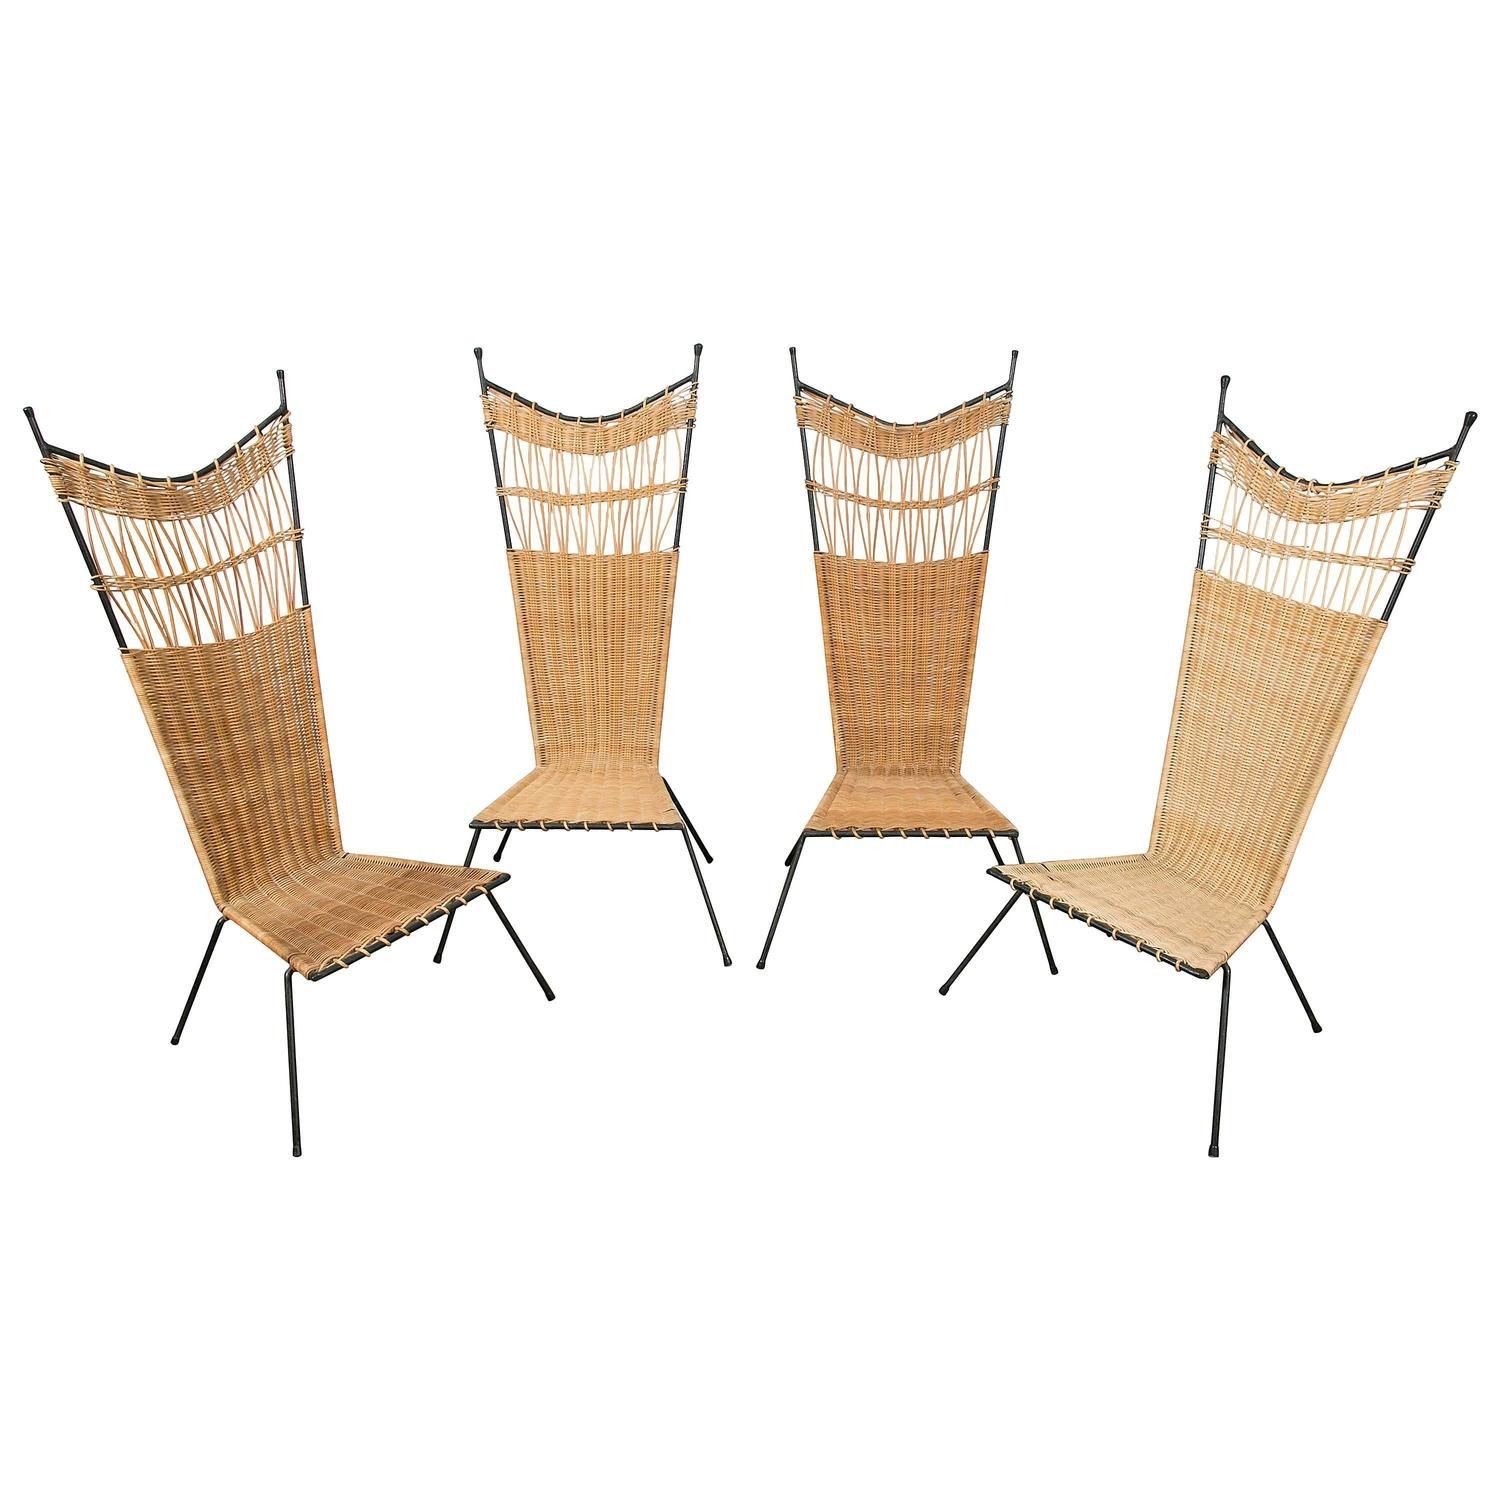 Set Of Four Metal And Wicker Slipper Chairs By Raoul Guys, France, 1950 |